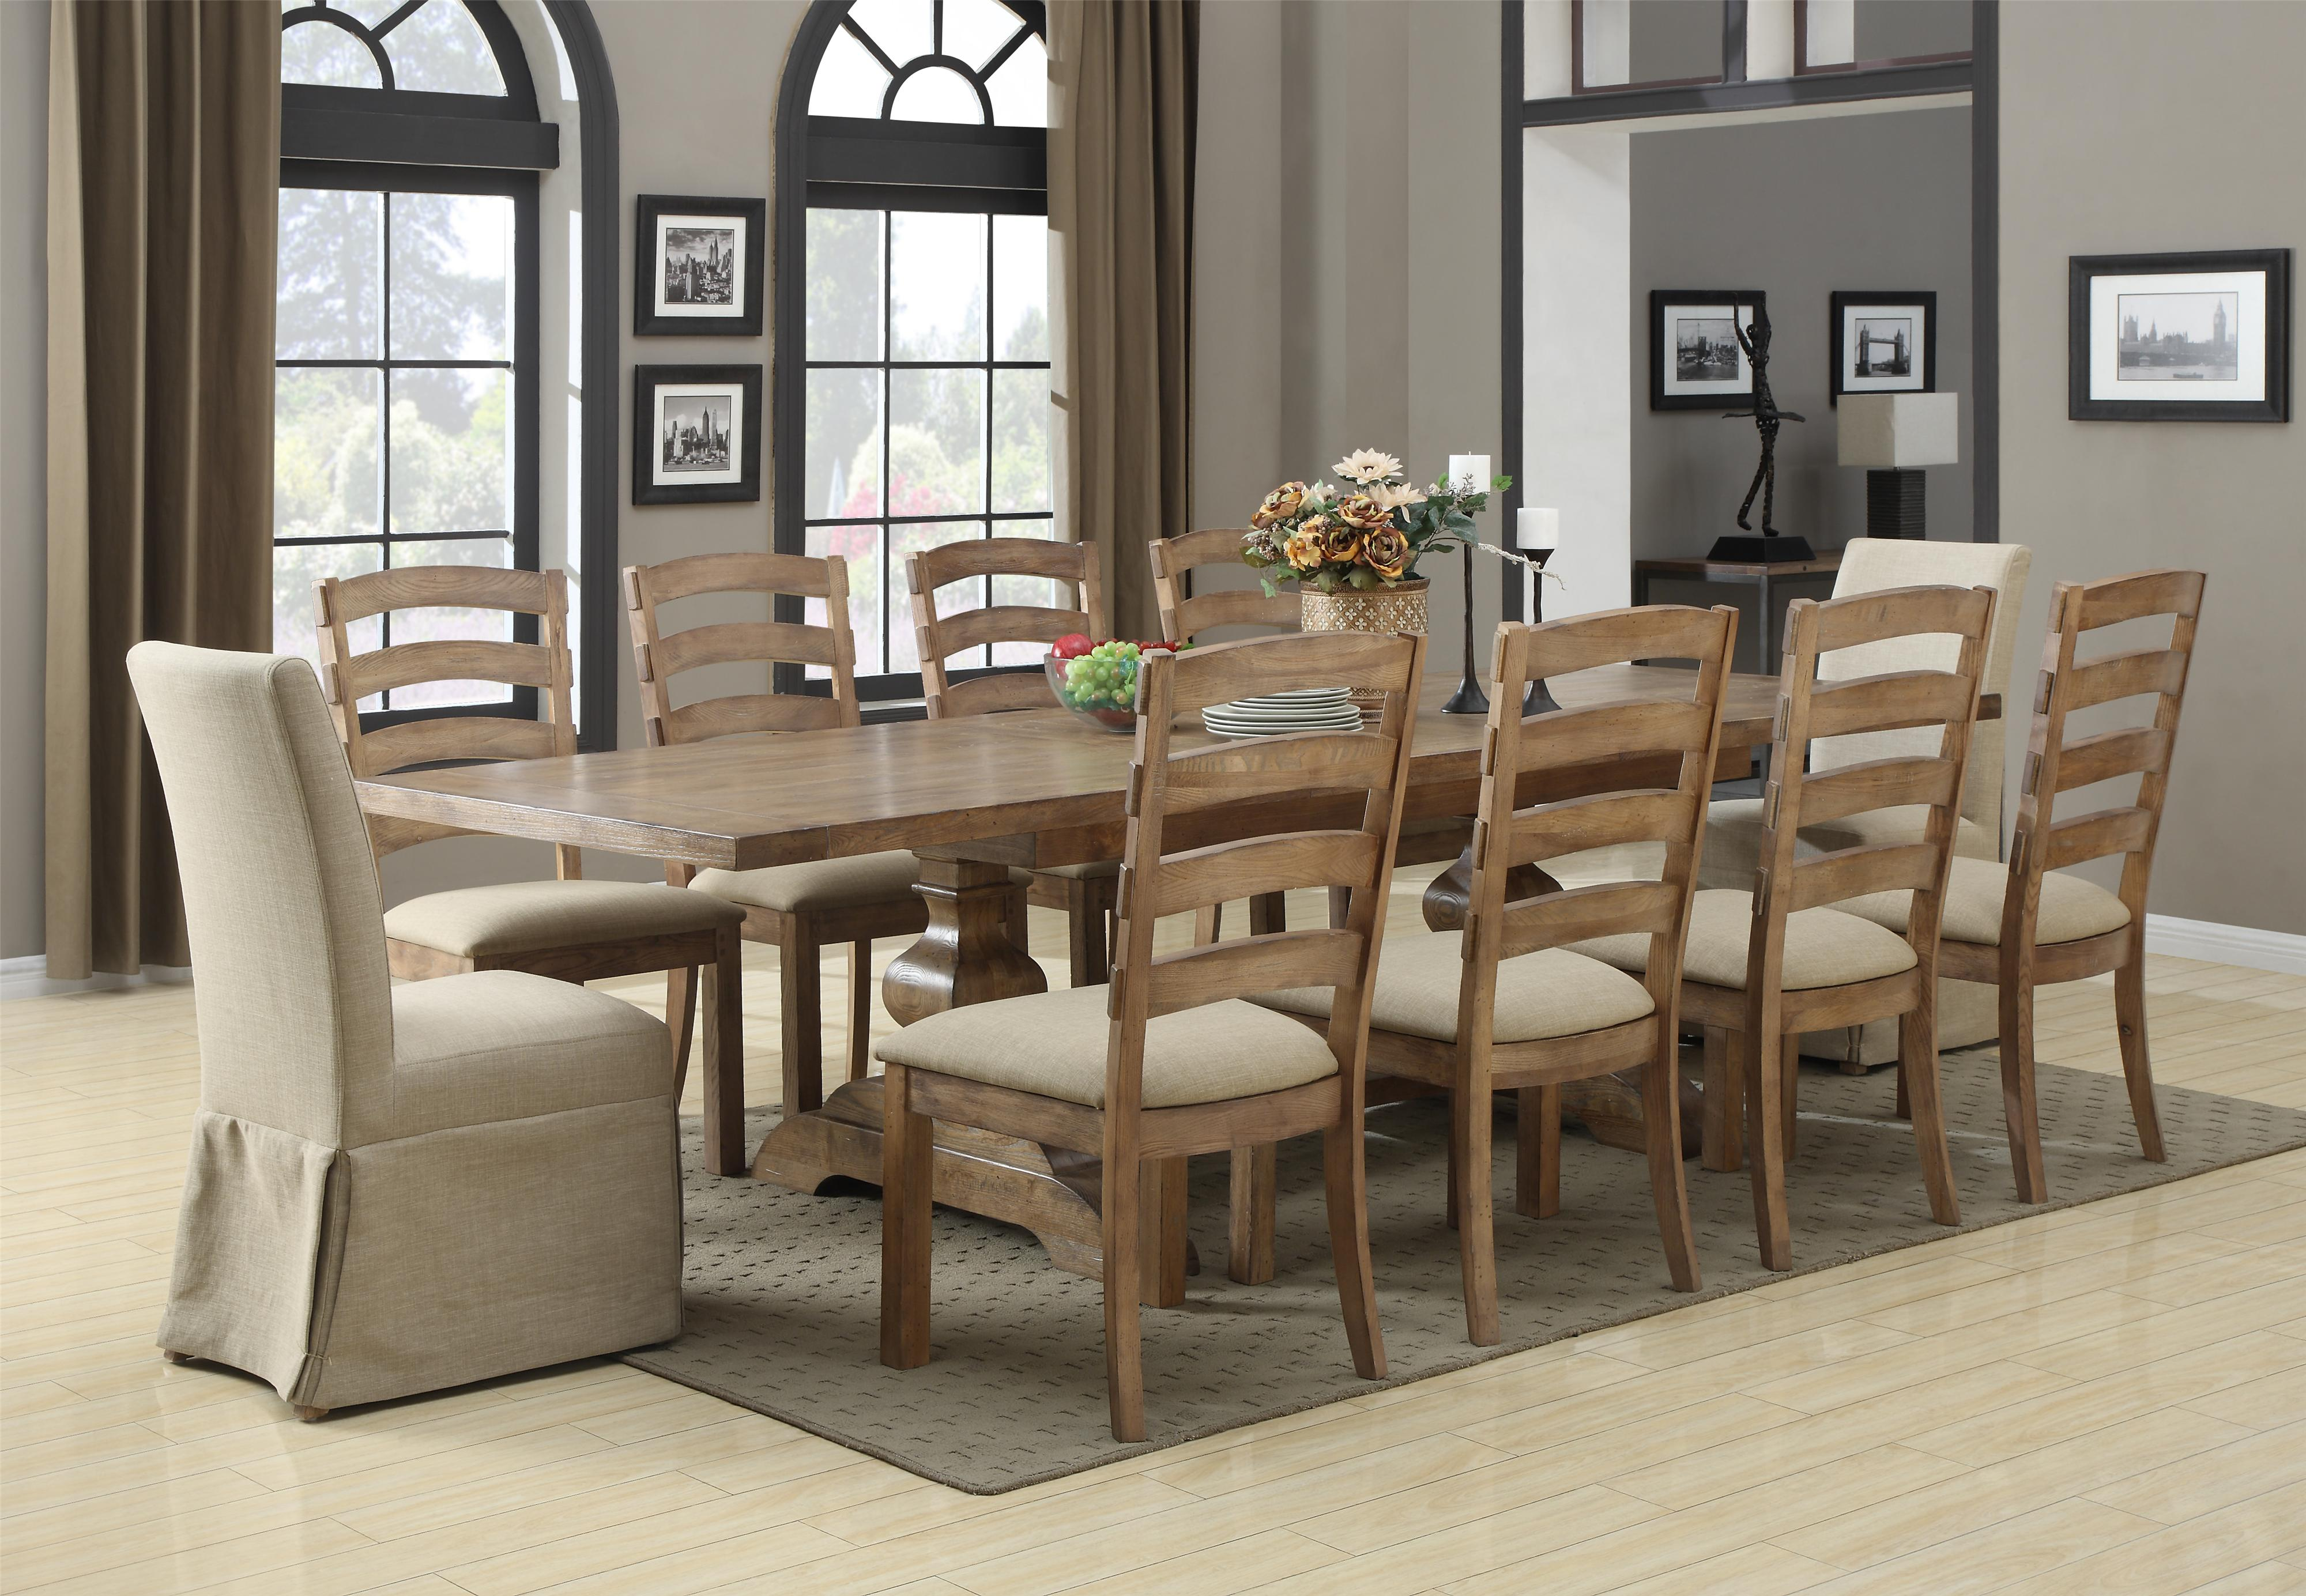 Belair 11 Piece Table & Chair Set by Emerald at Northeast Factory Direct